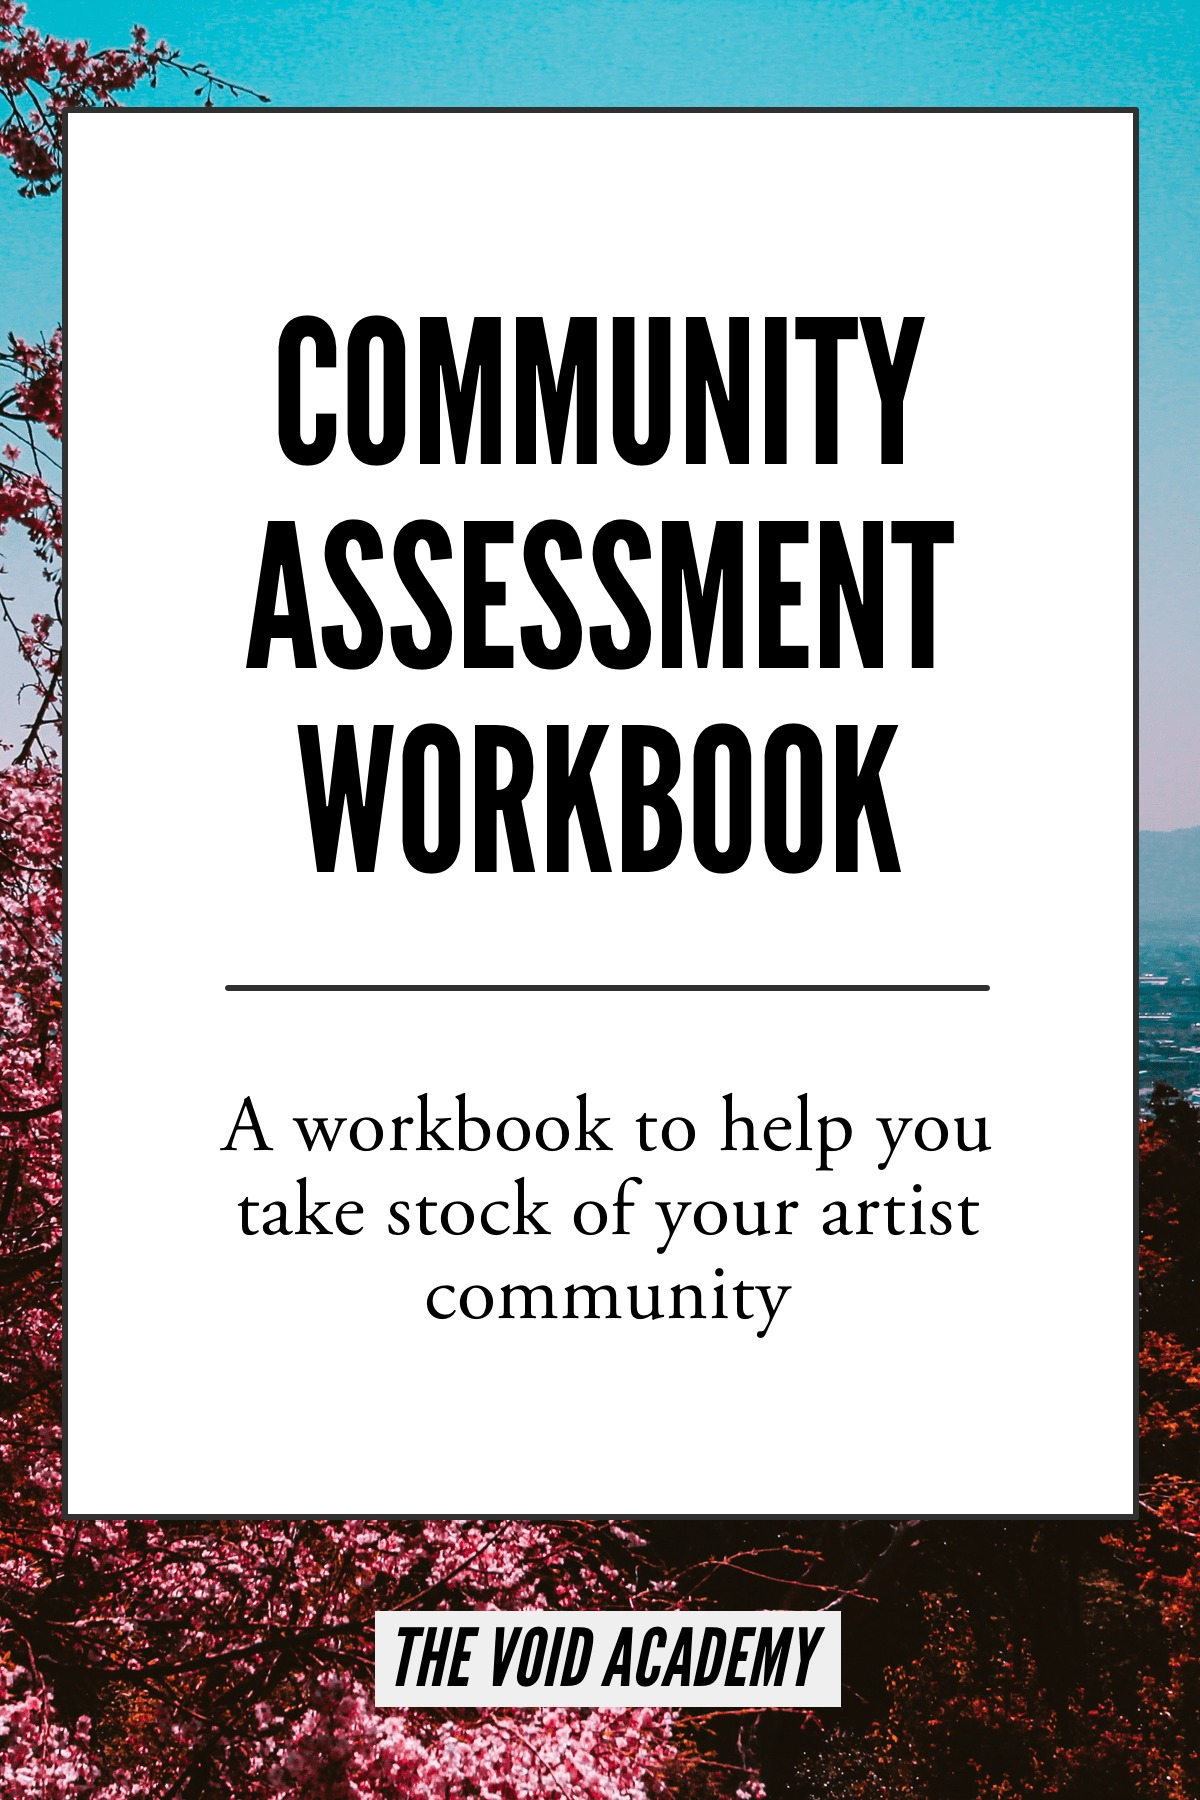 community assessment 2